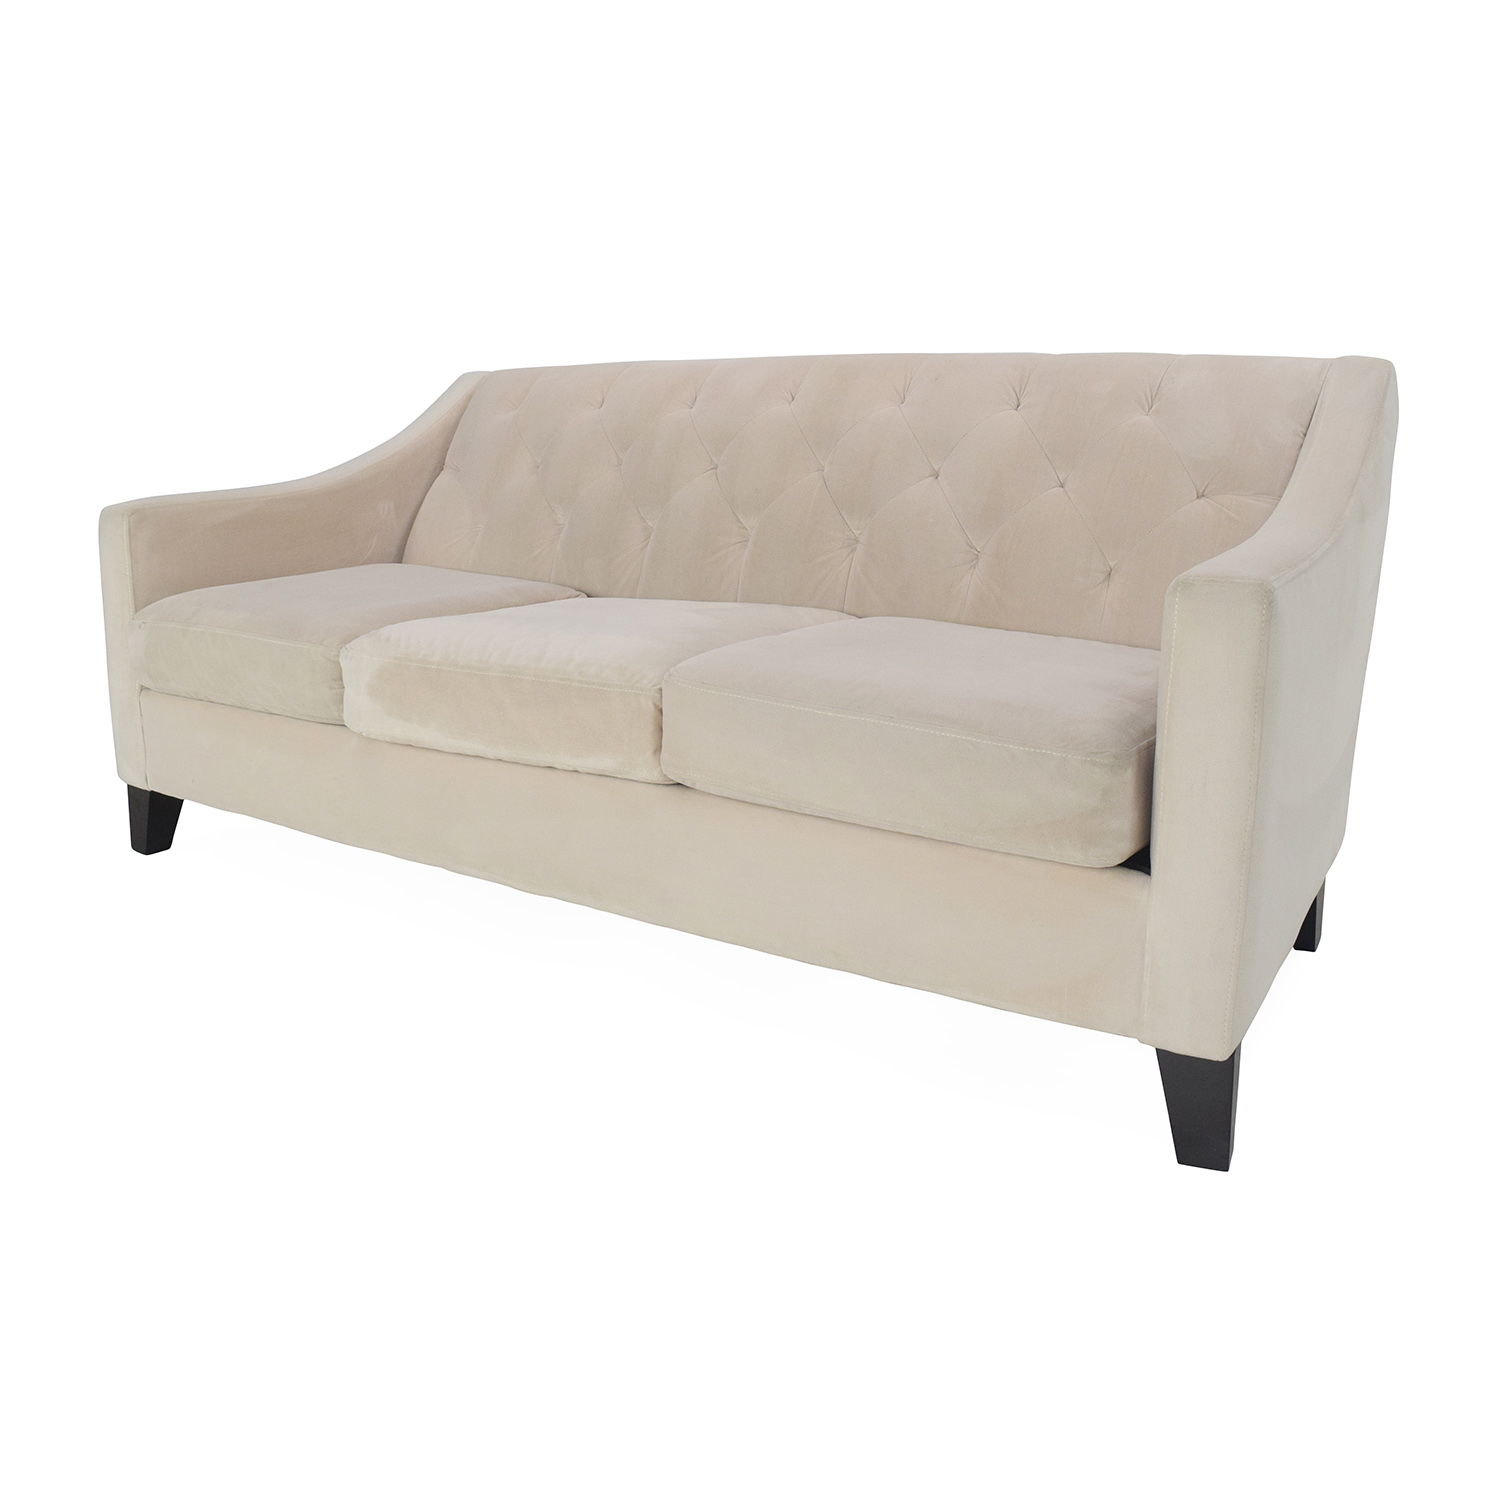 Max Home Furniture Macy s Chloe Tufted Sofa dimensions. 58  OFF   Max Home Furniture Macy s Chloe Tufted Sofa   Sofas